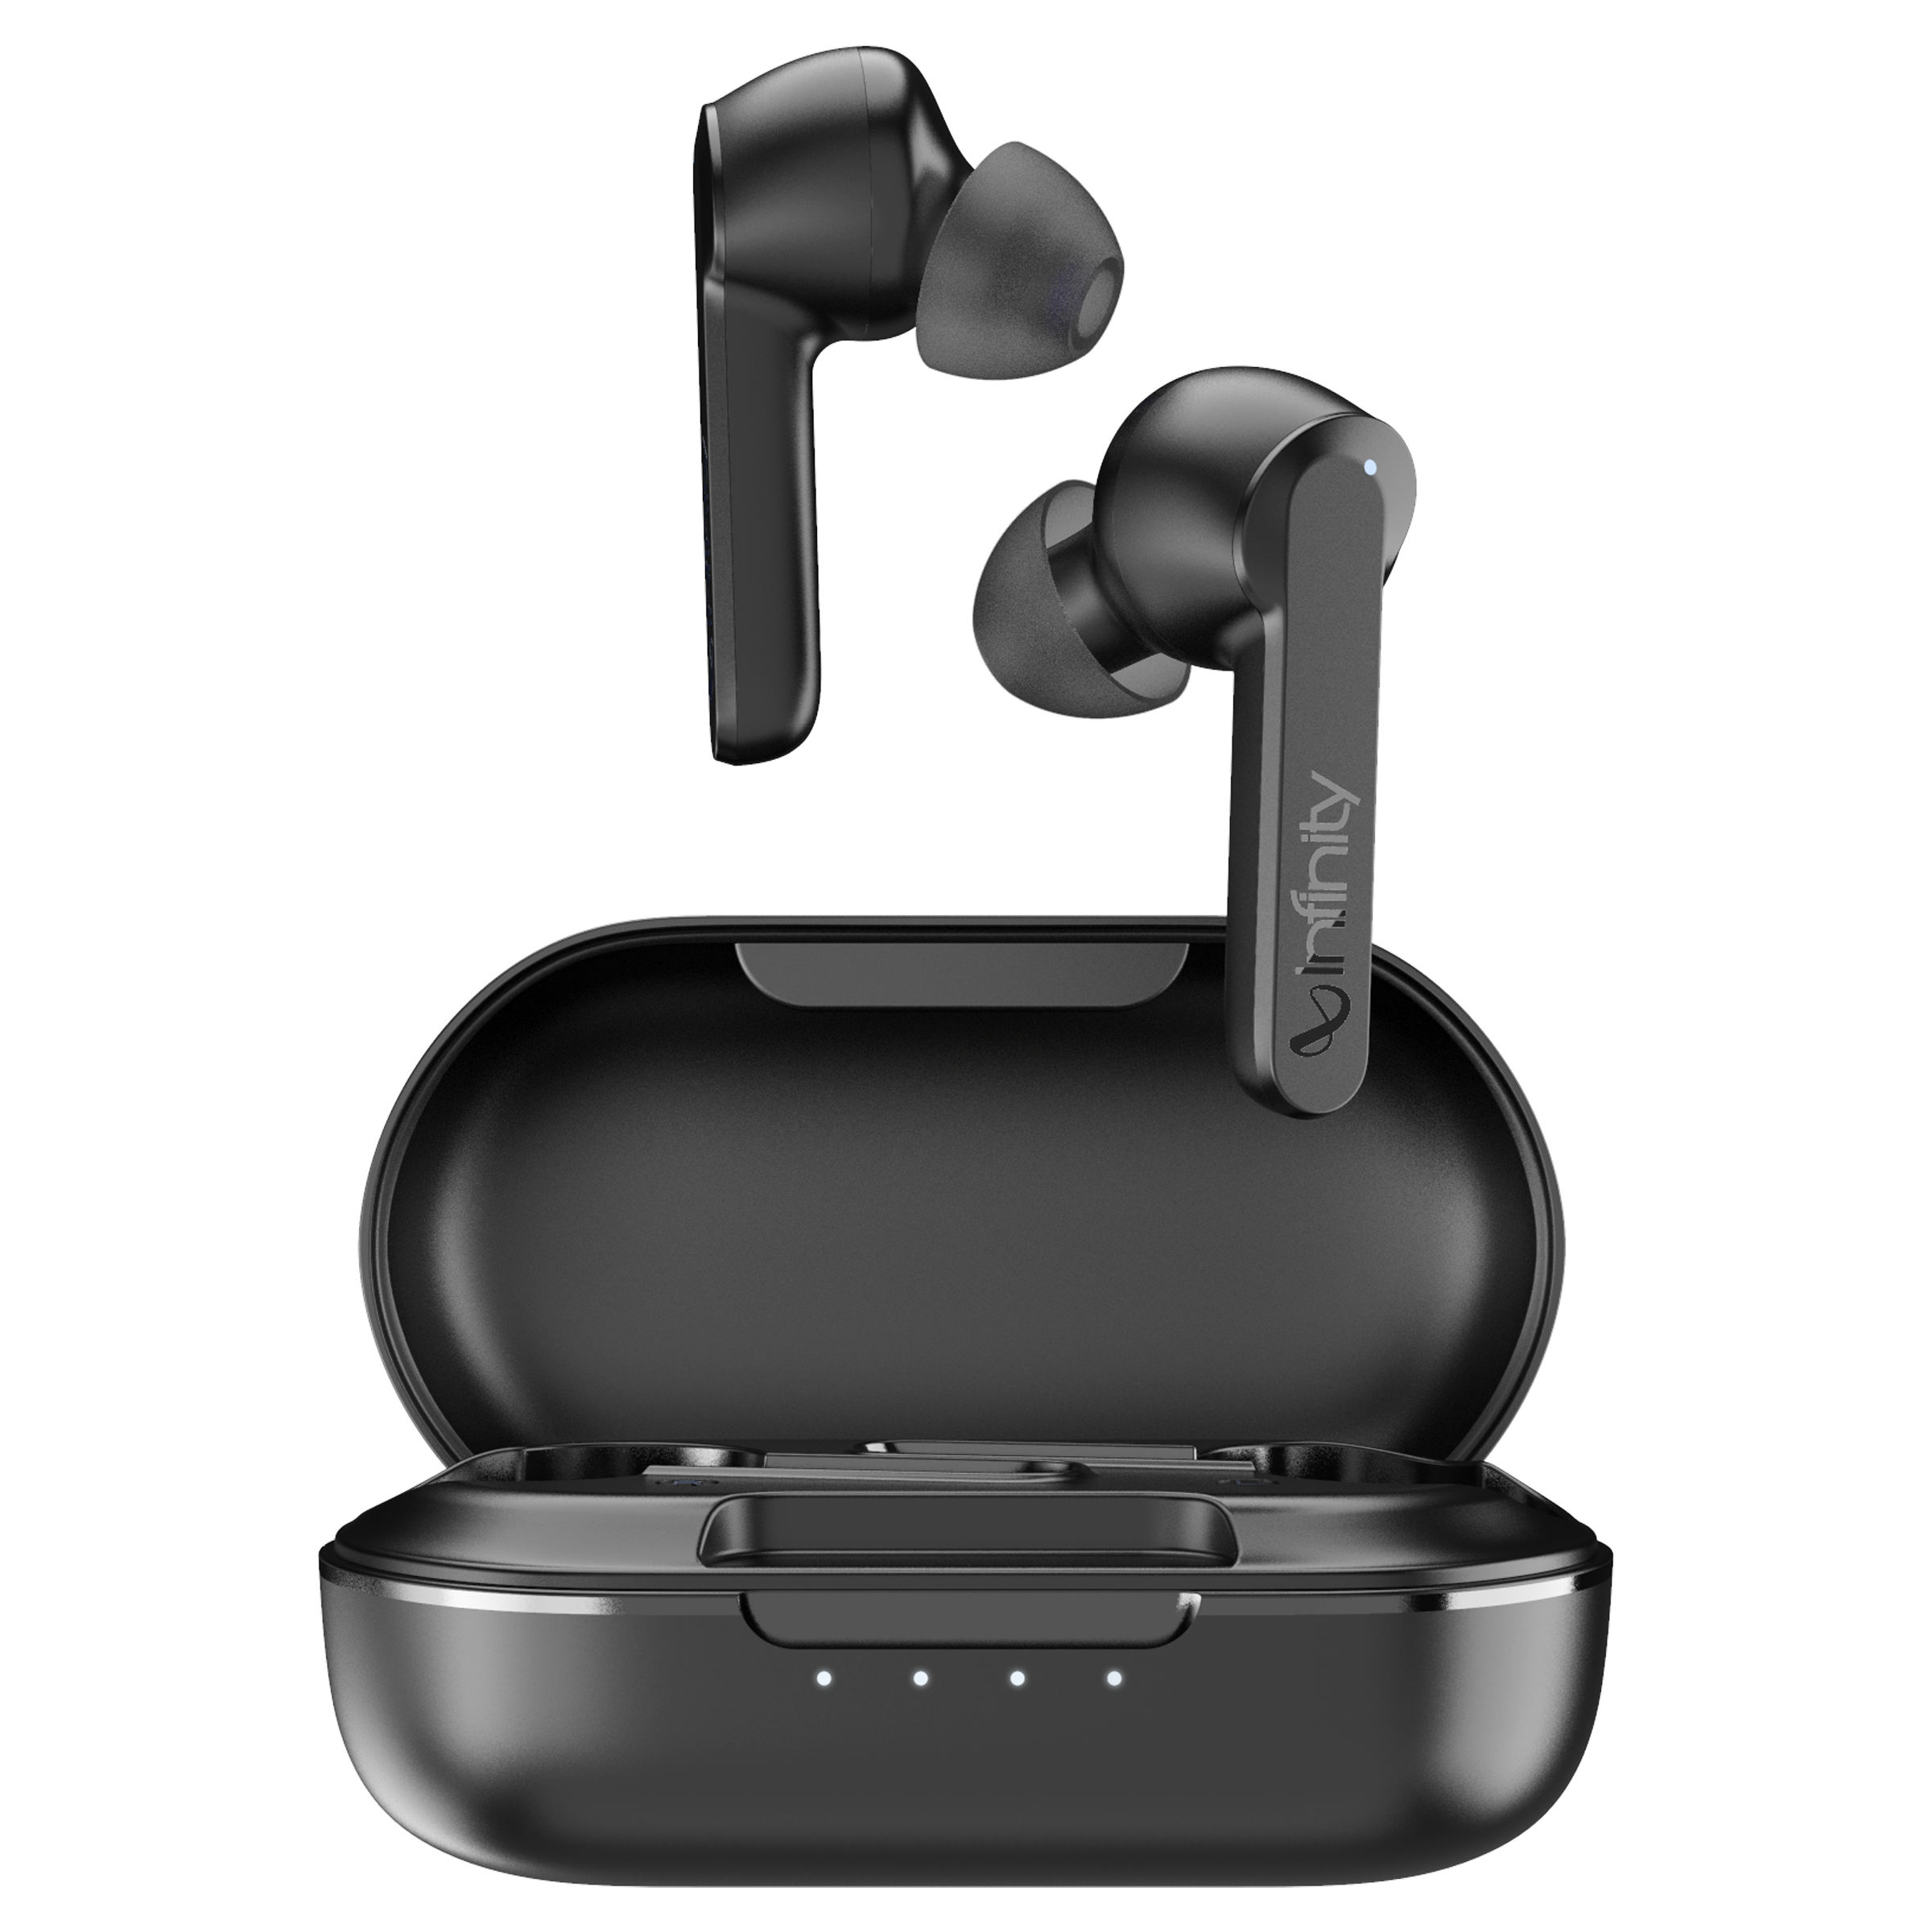 Infinity Swing 300 In-Ear Truly Wireless Earbuds with Mic (Bluetooth 5.0, Handsfree Stereo Calls, INFSWG300PBLK, Black)_1